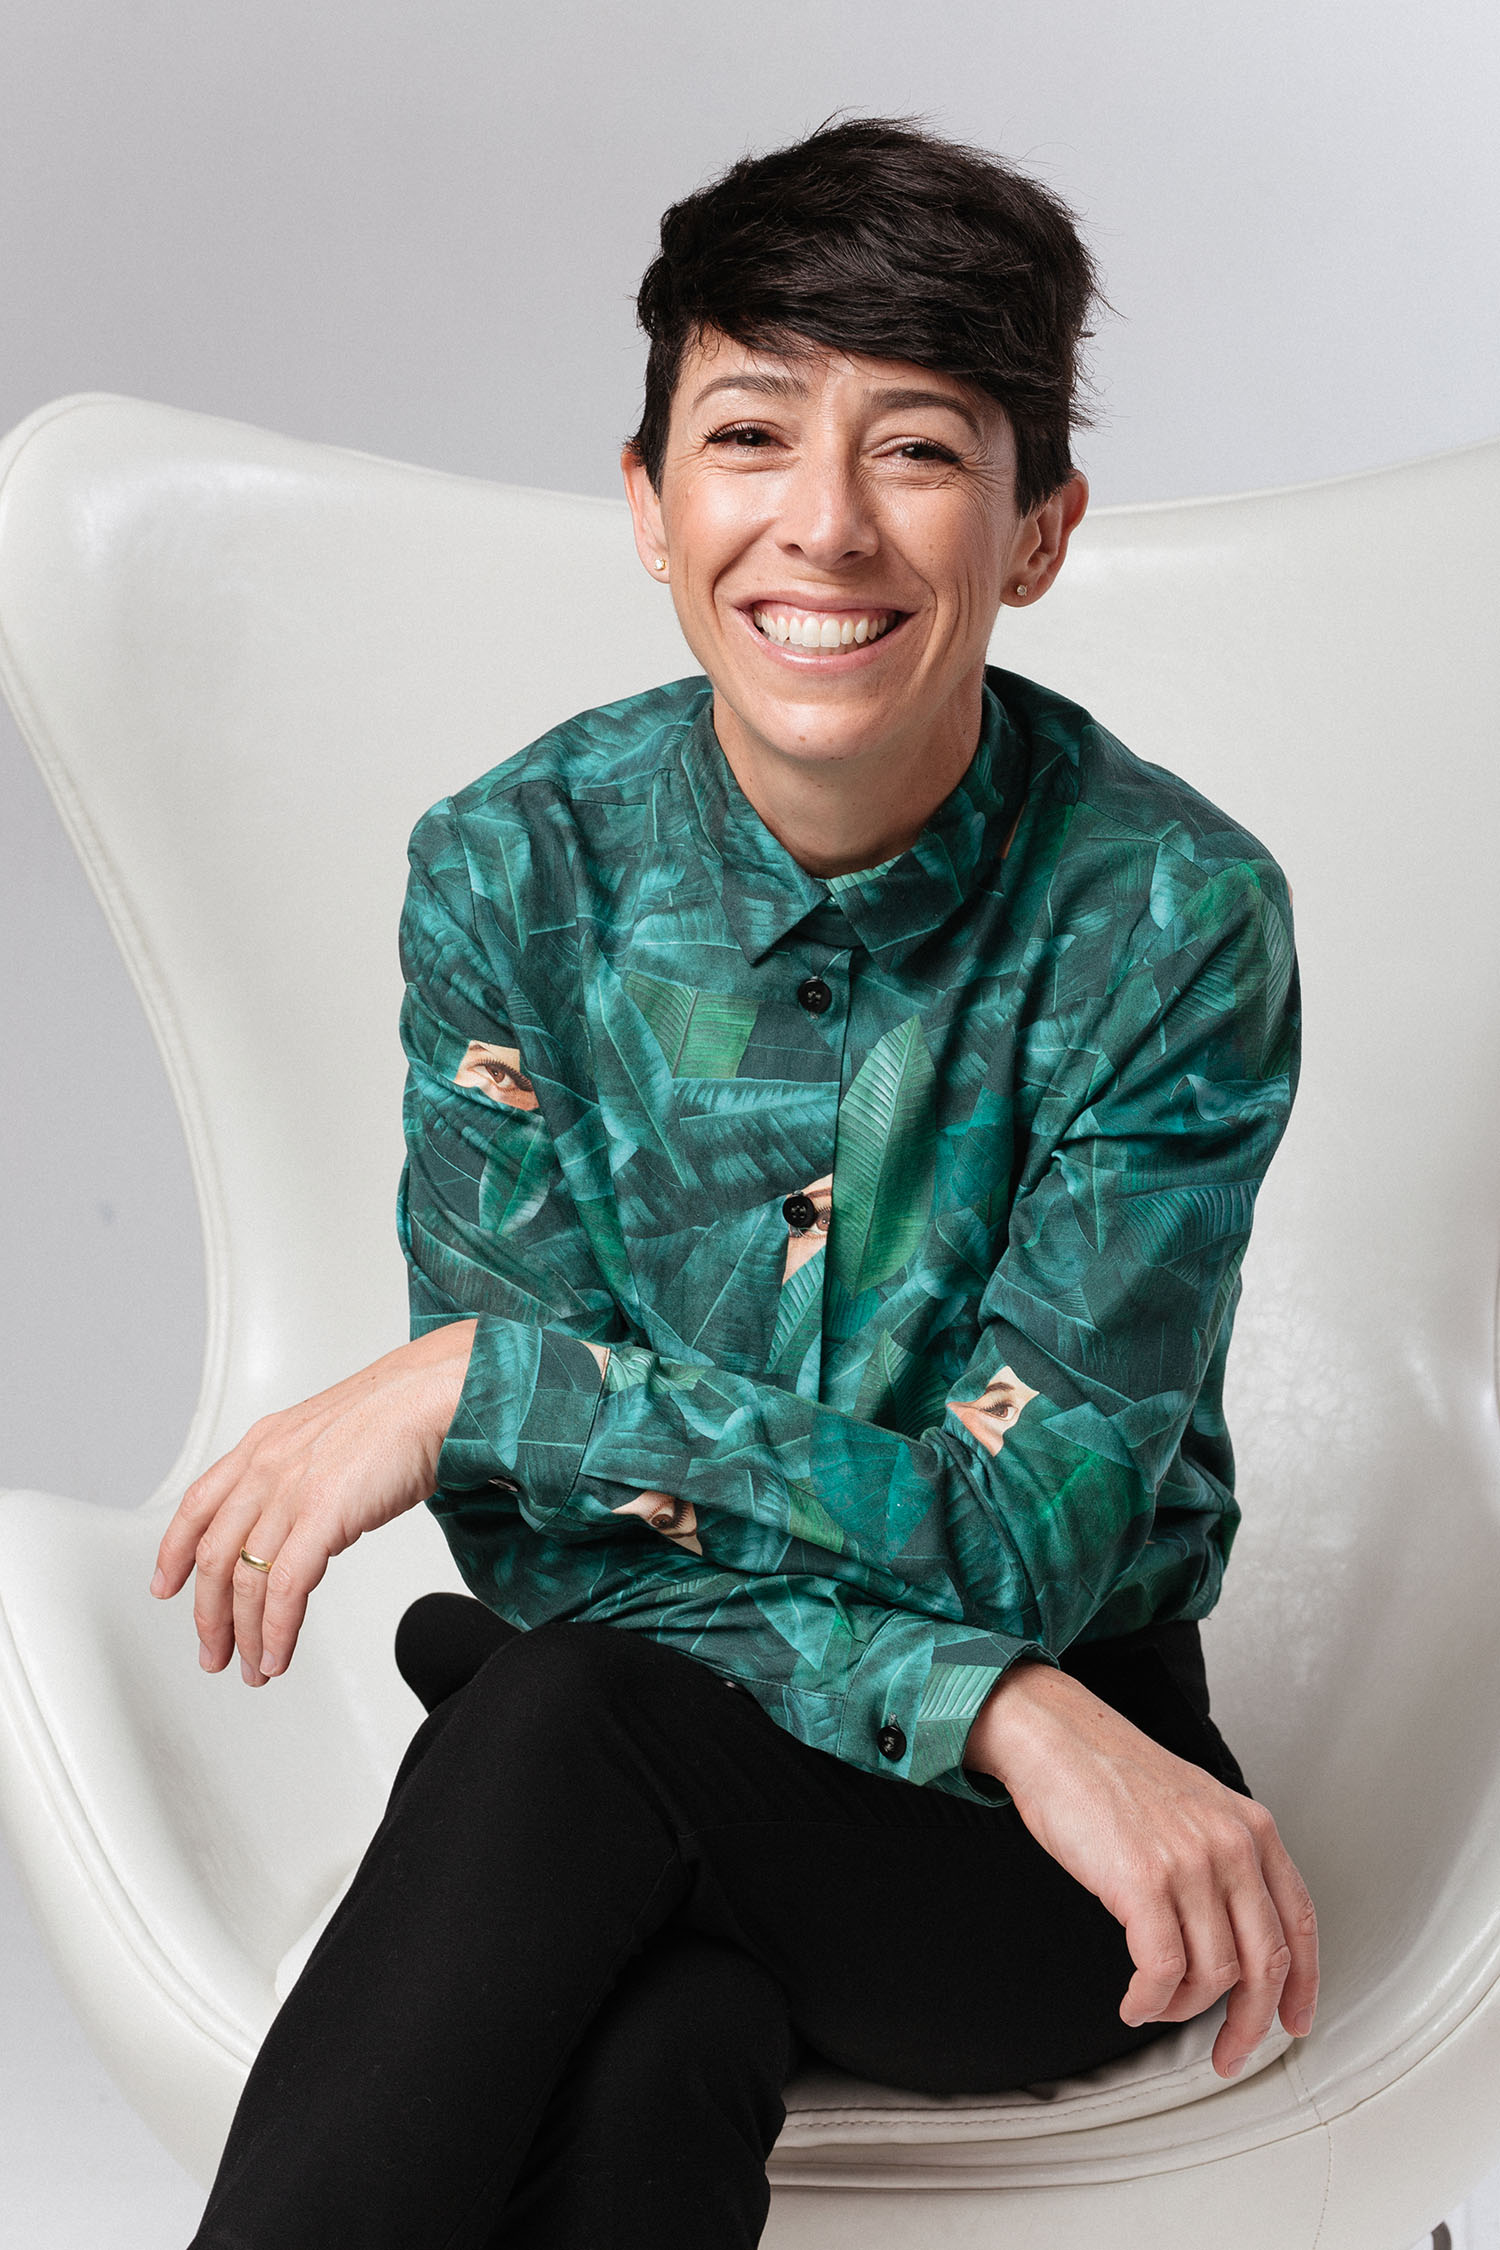 Gala Magriña, Founder of Gala Magriña Design, an interior design agency based in New York City